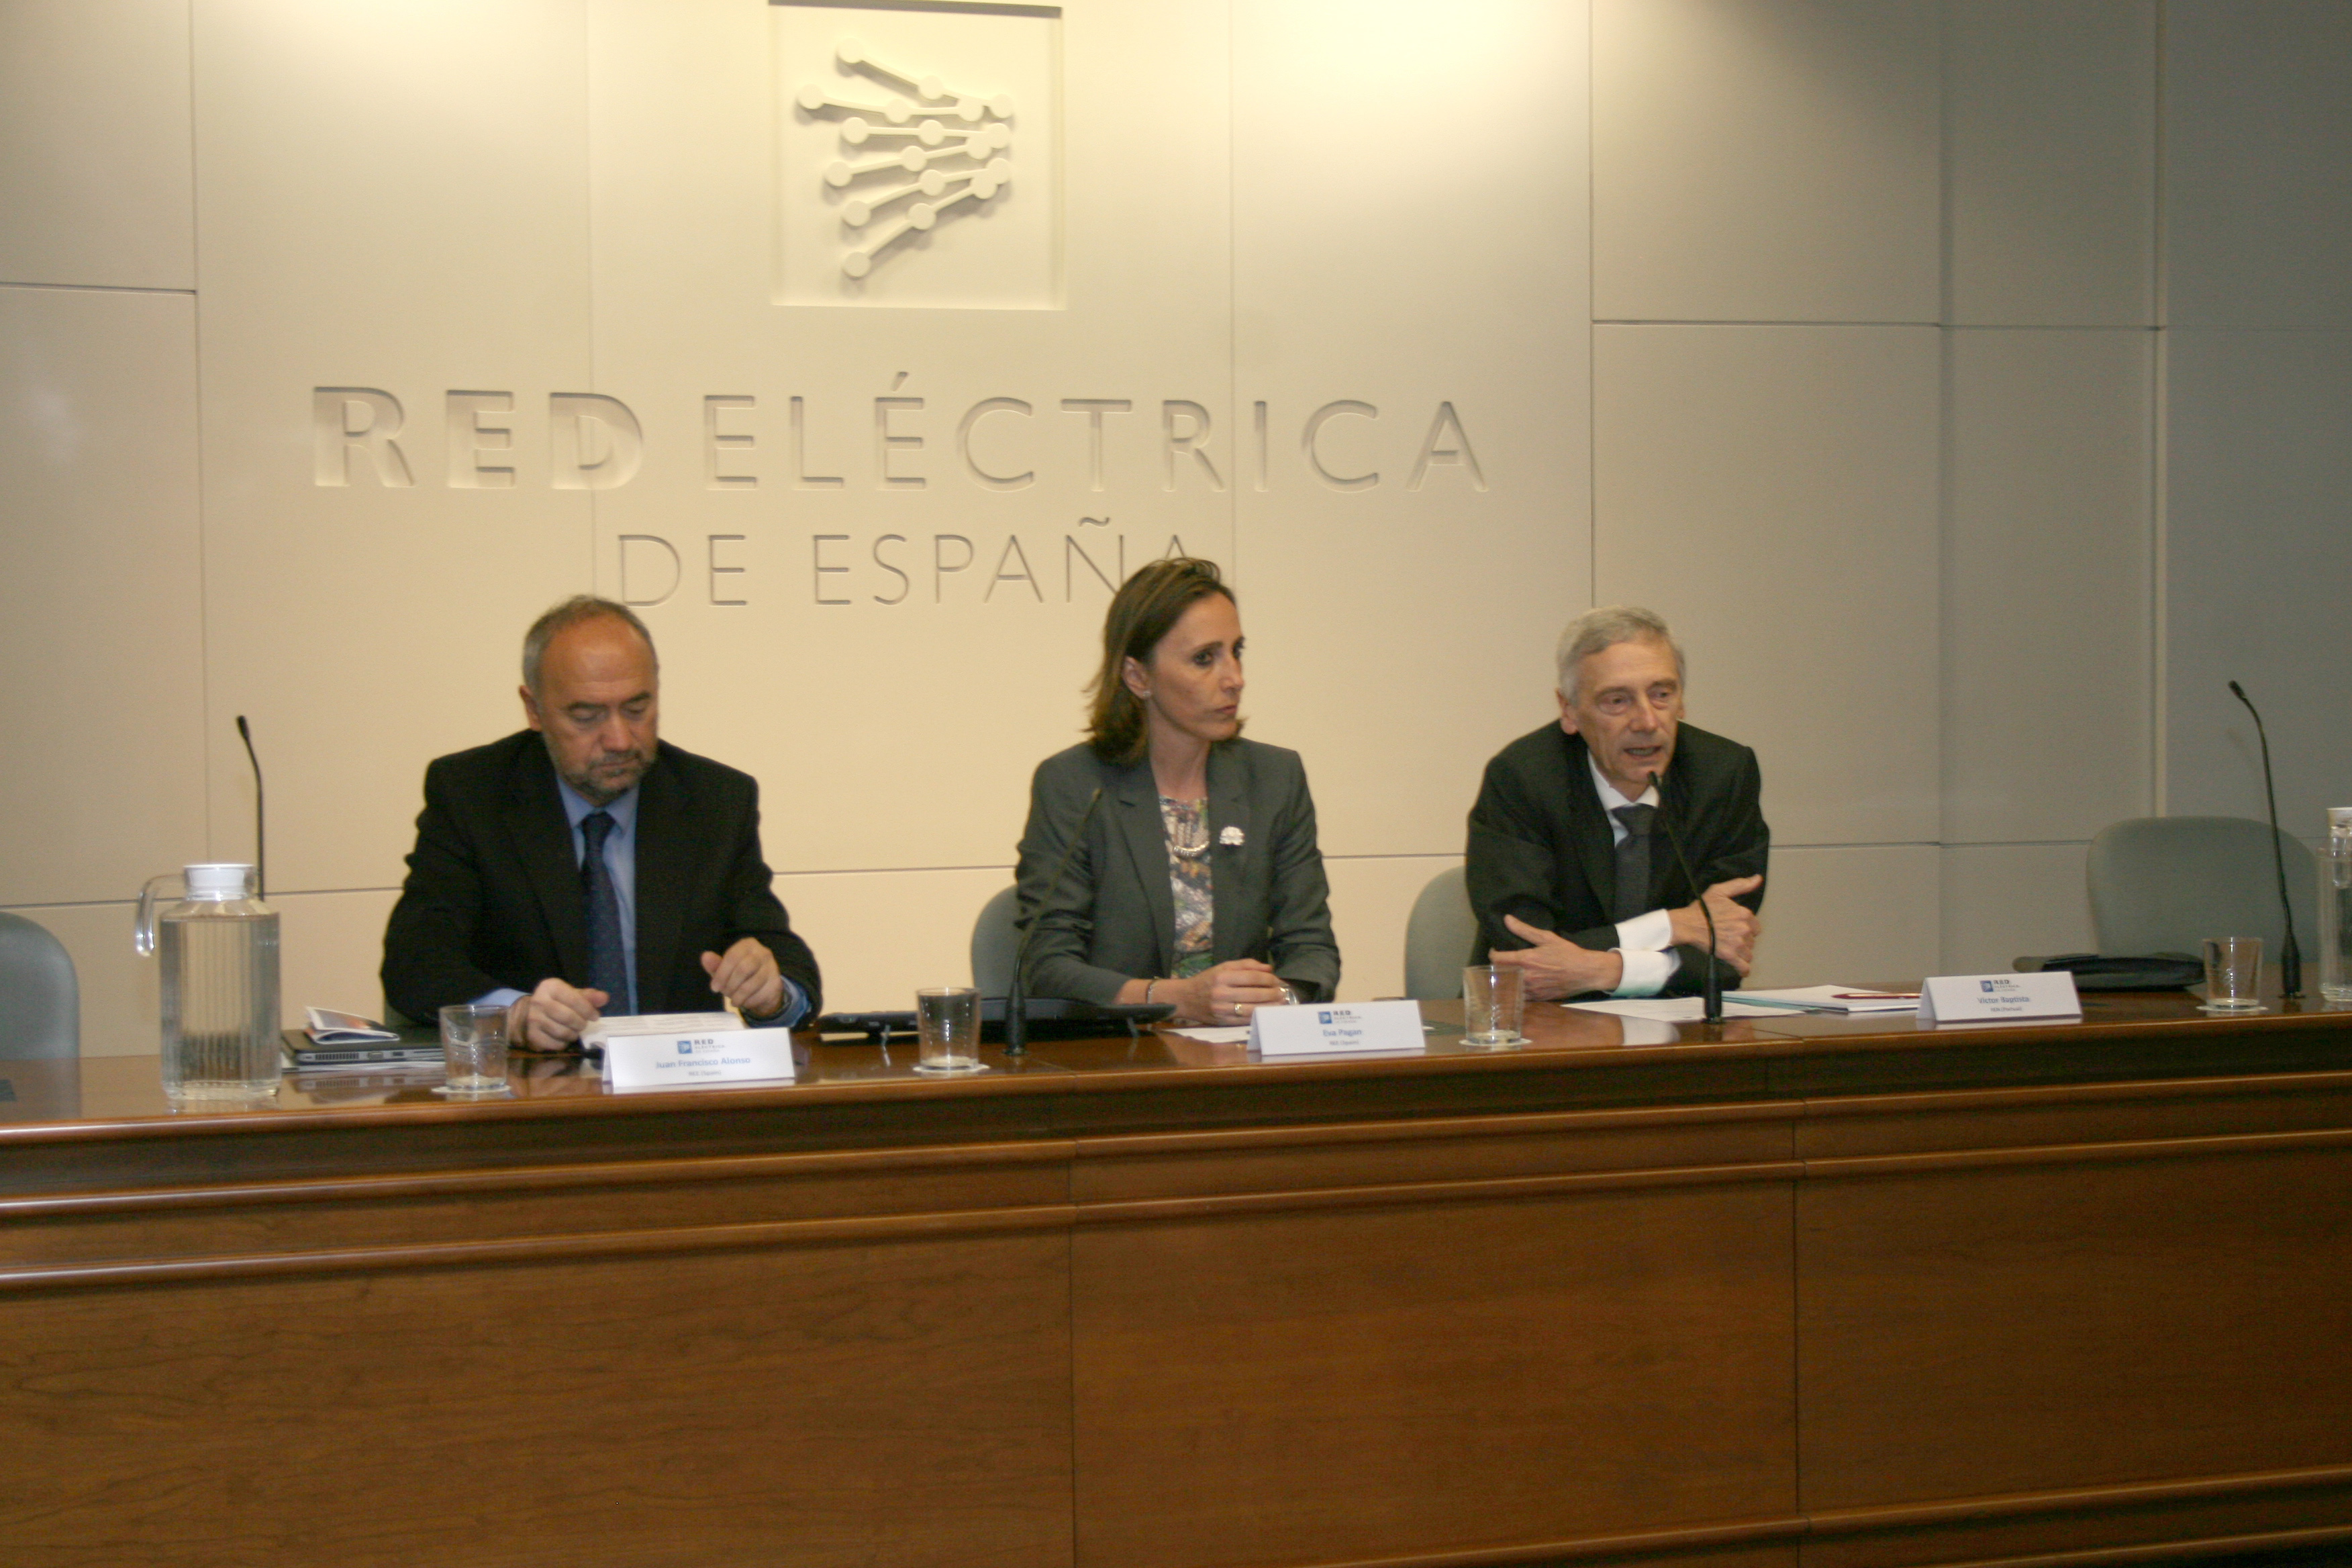 Opening speech: (from left to right) Juan Francisco Alonso (REE), Eva Pagan (REE) and Victor Baptista (REN)